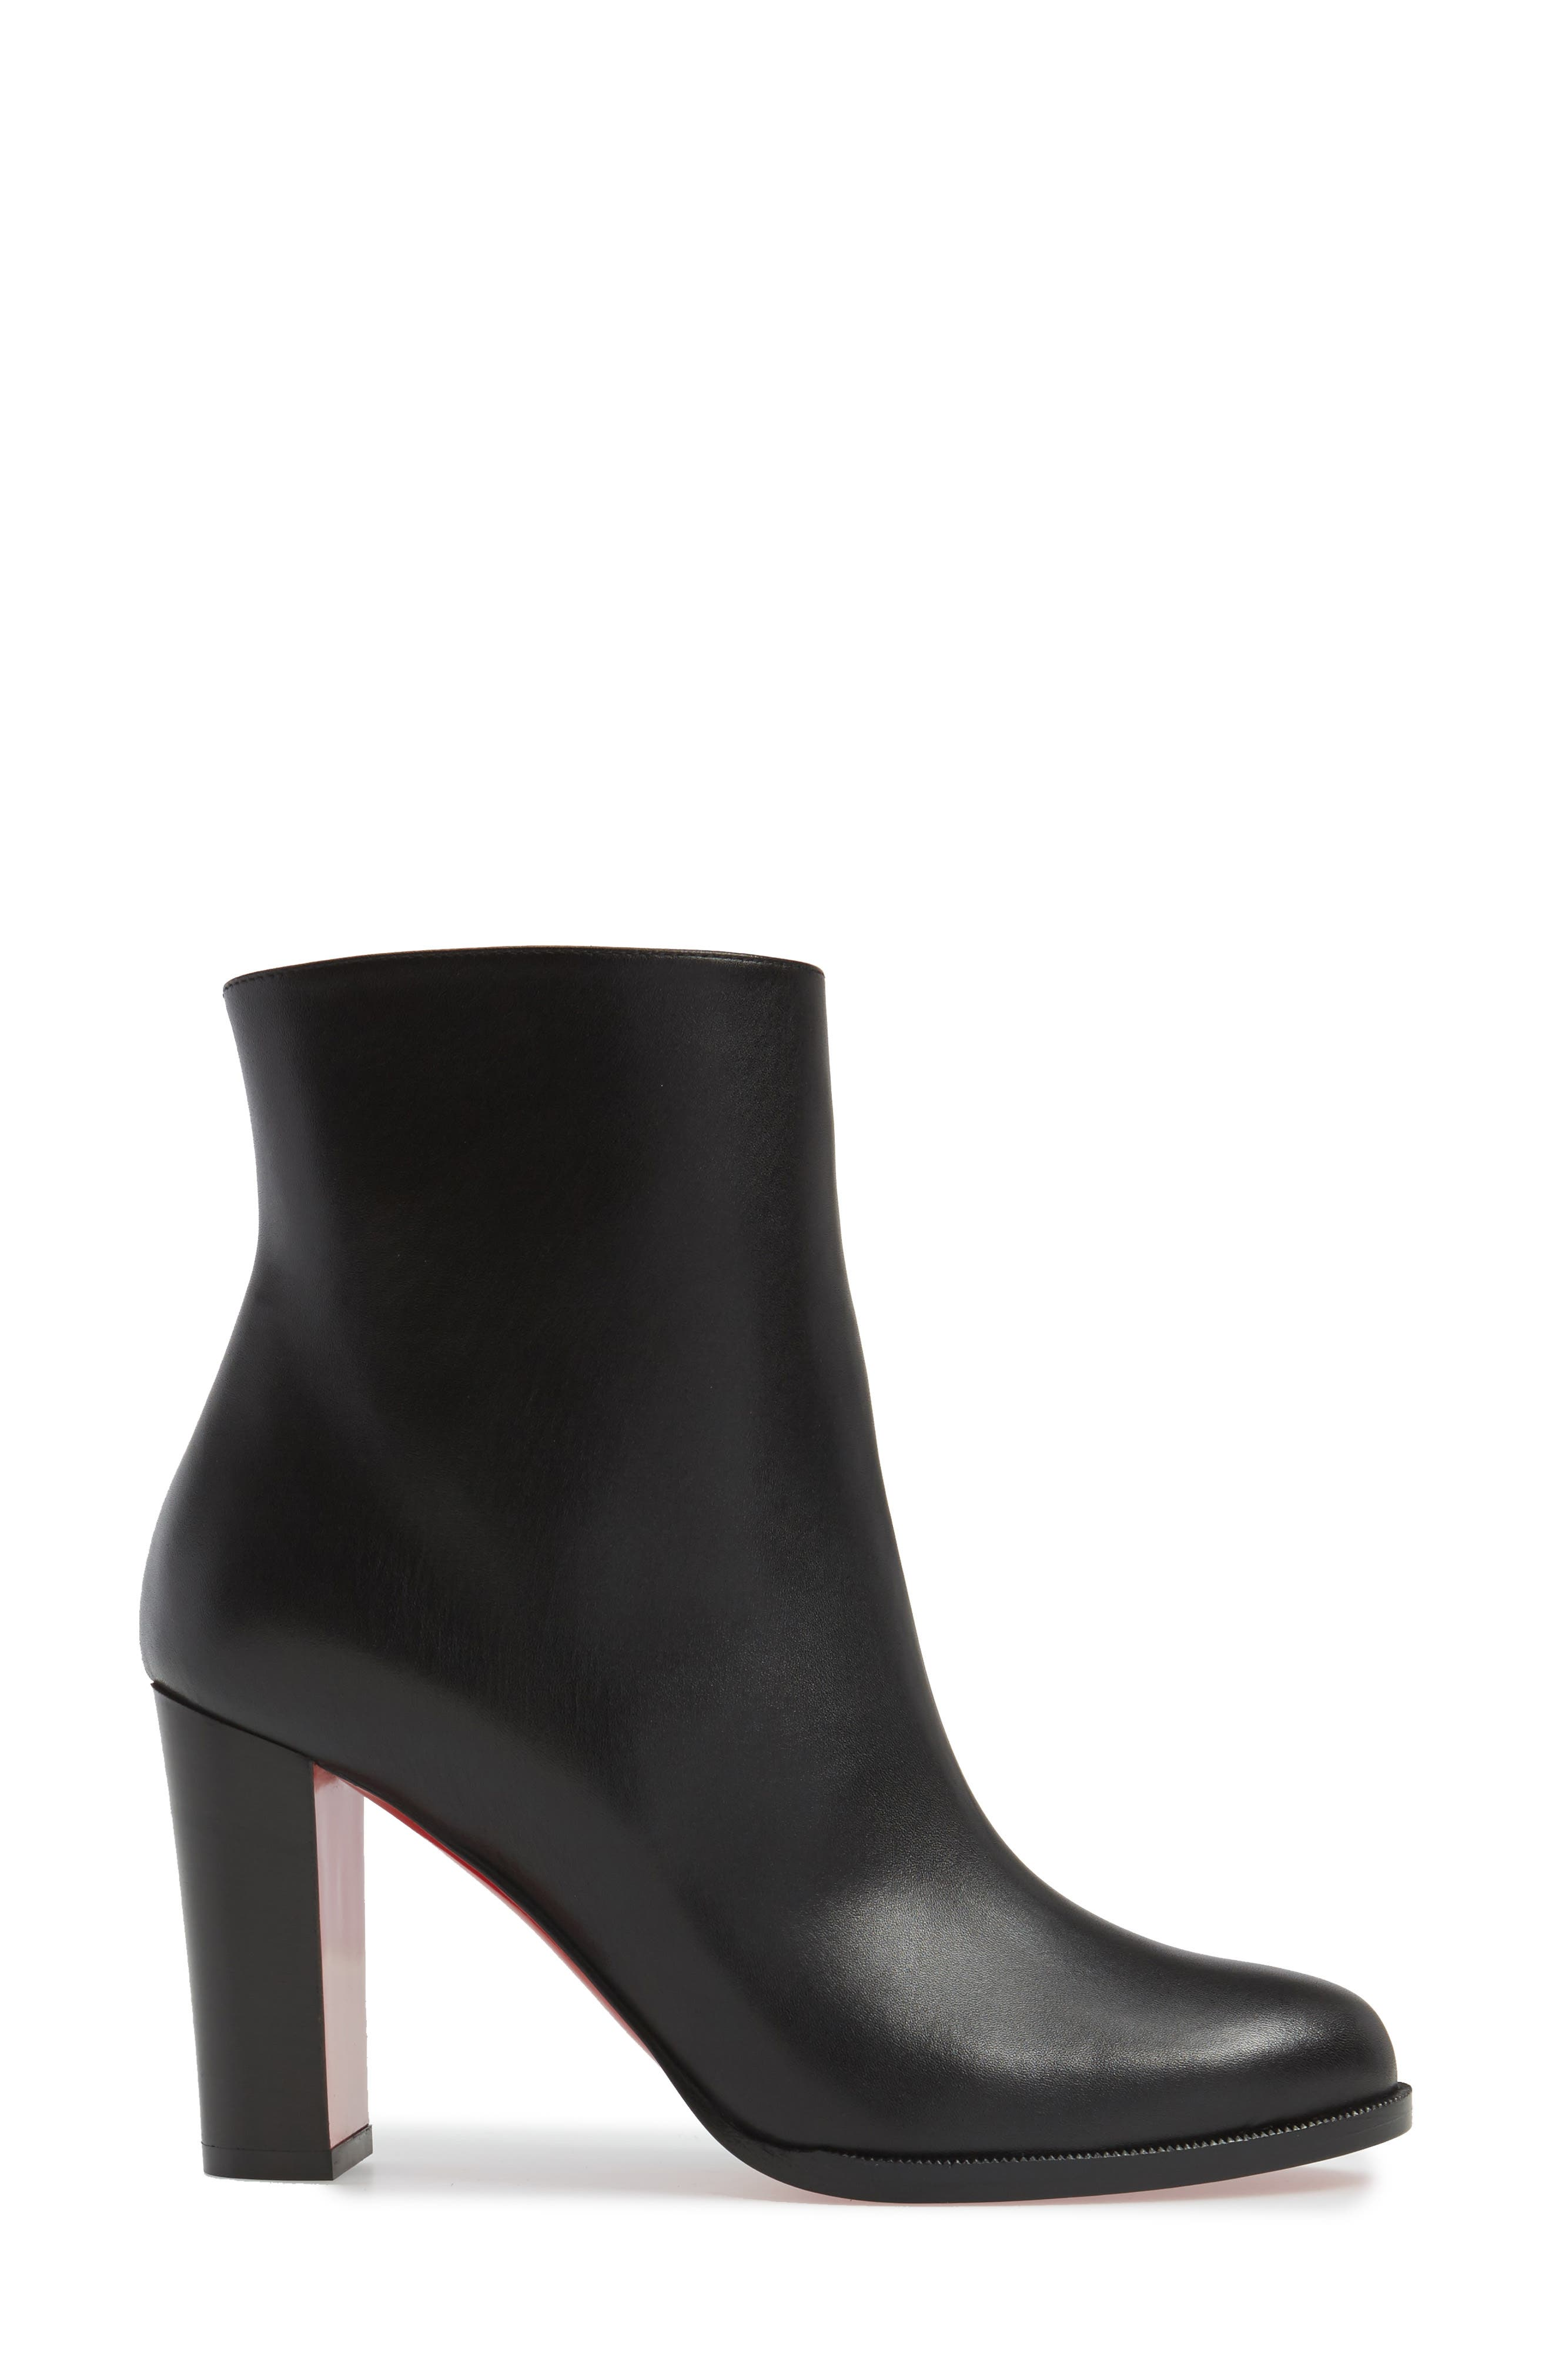 CHRISTIAN LOUBOUTIN,                             Adox Boot,                             Alternate thumbnail 3, color,                             BLACK LEATHER